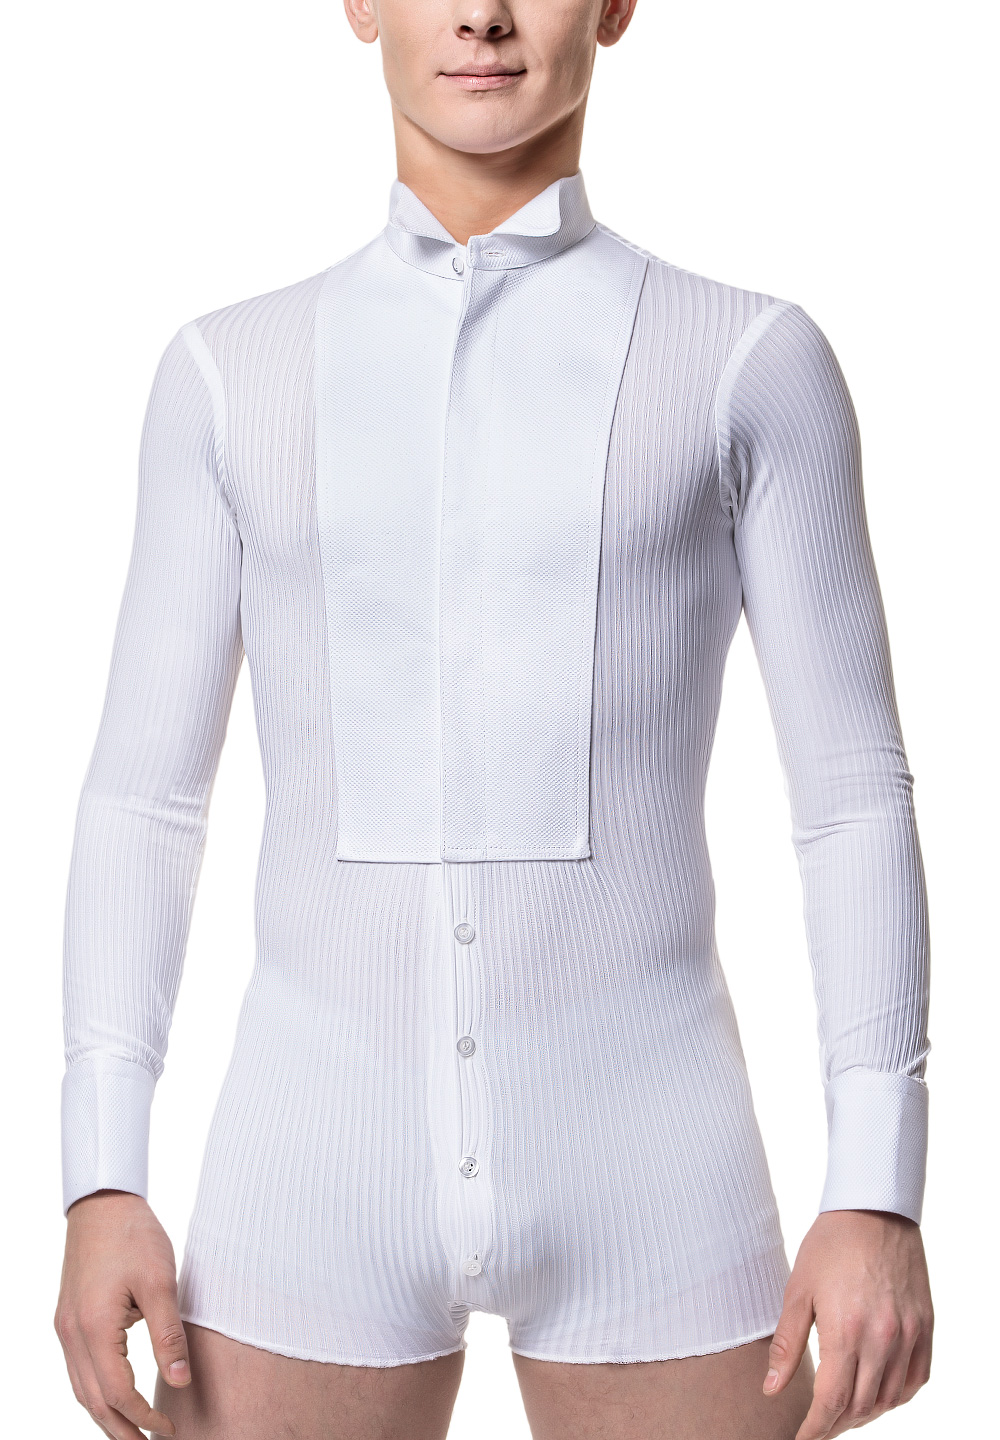 RS Atelier Mens Milord Full Stretch Ballroom Shirt